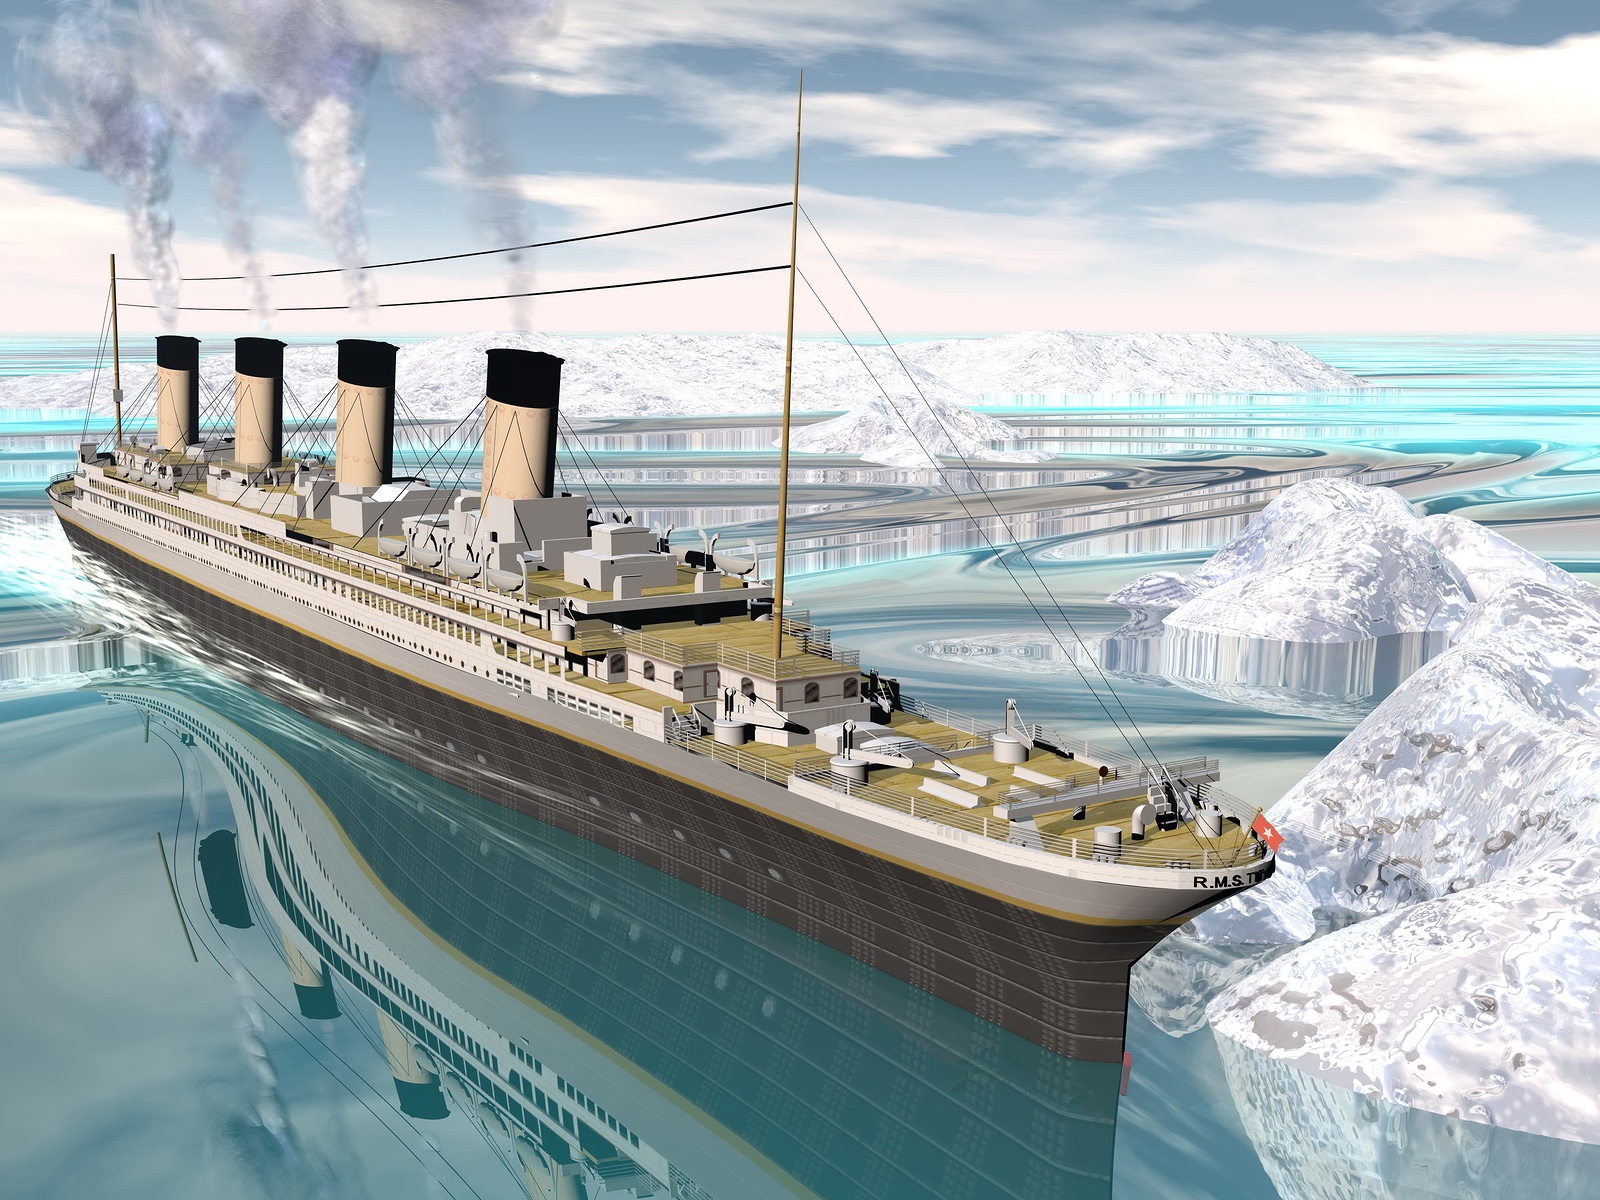 aaae6490 Titanic homework help | The sinking of the Titanic explained for ...